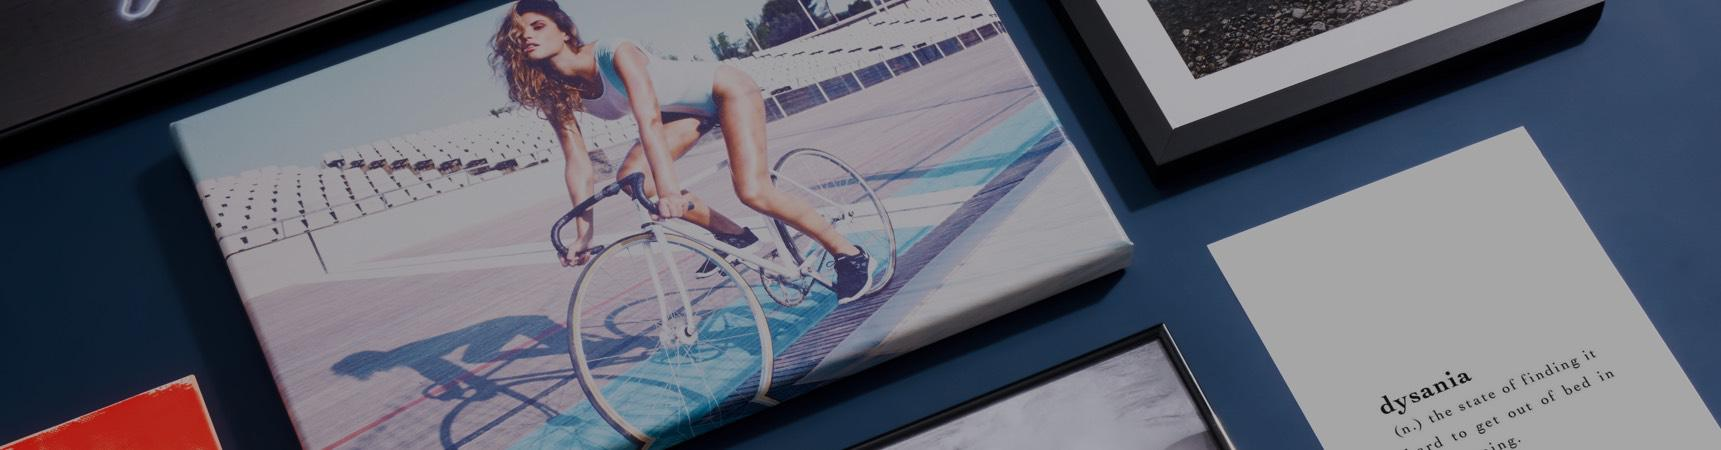 Canvas print with a model on a bicycle and other JUNIQE prints